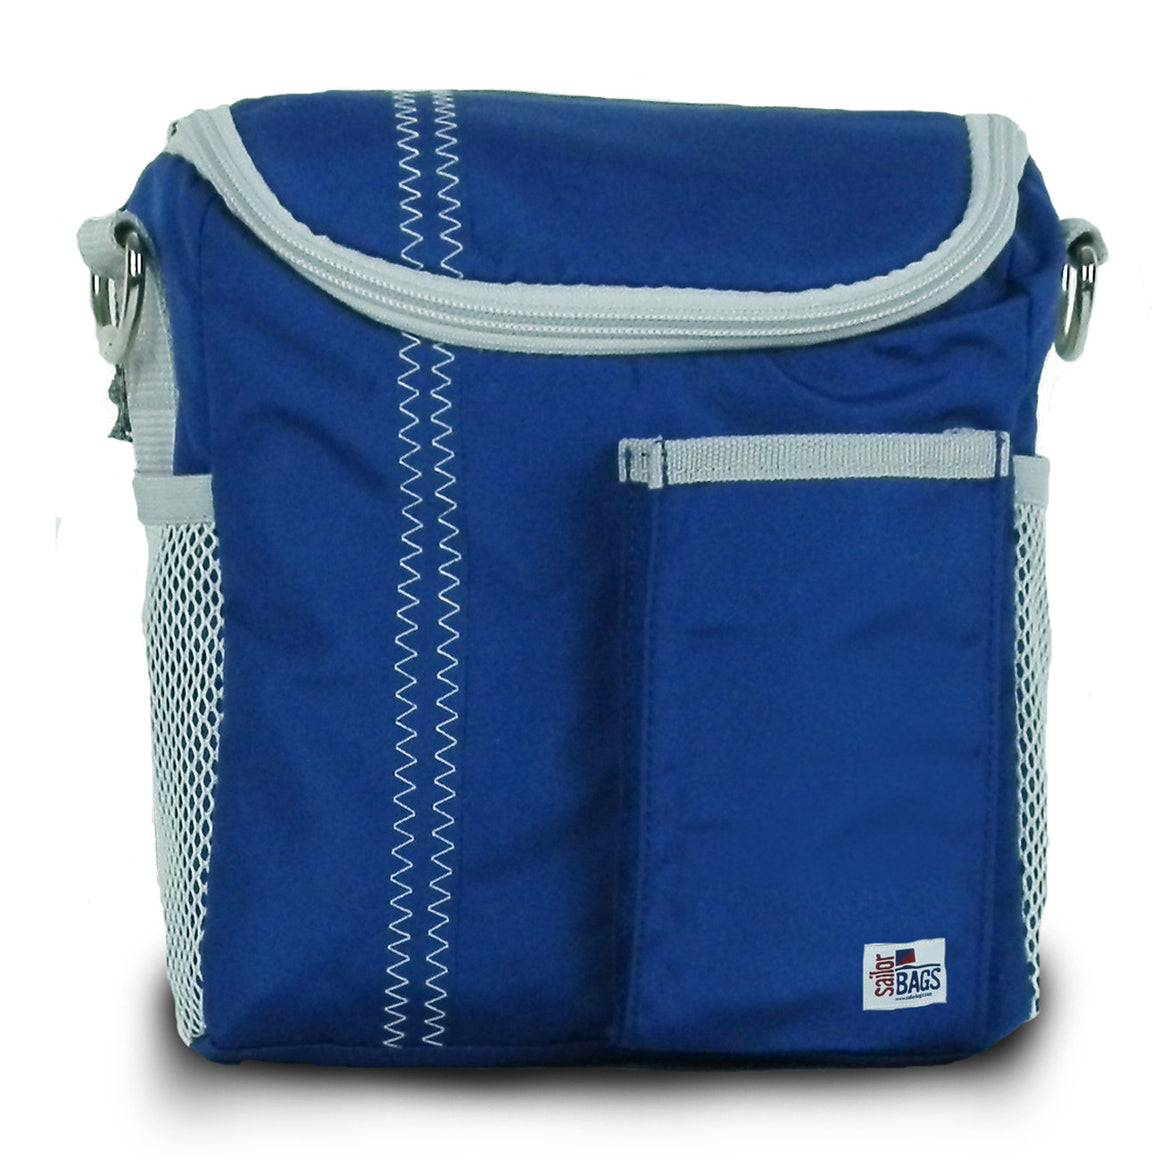 Chesapeake Insulated Lunch Bag by SailorBags Nautical Blue w/ Grey Trim